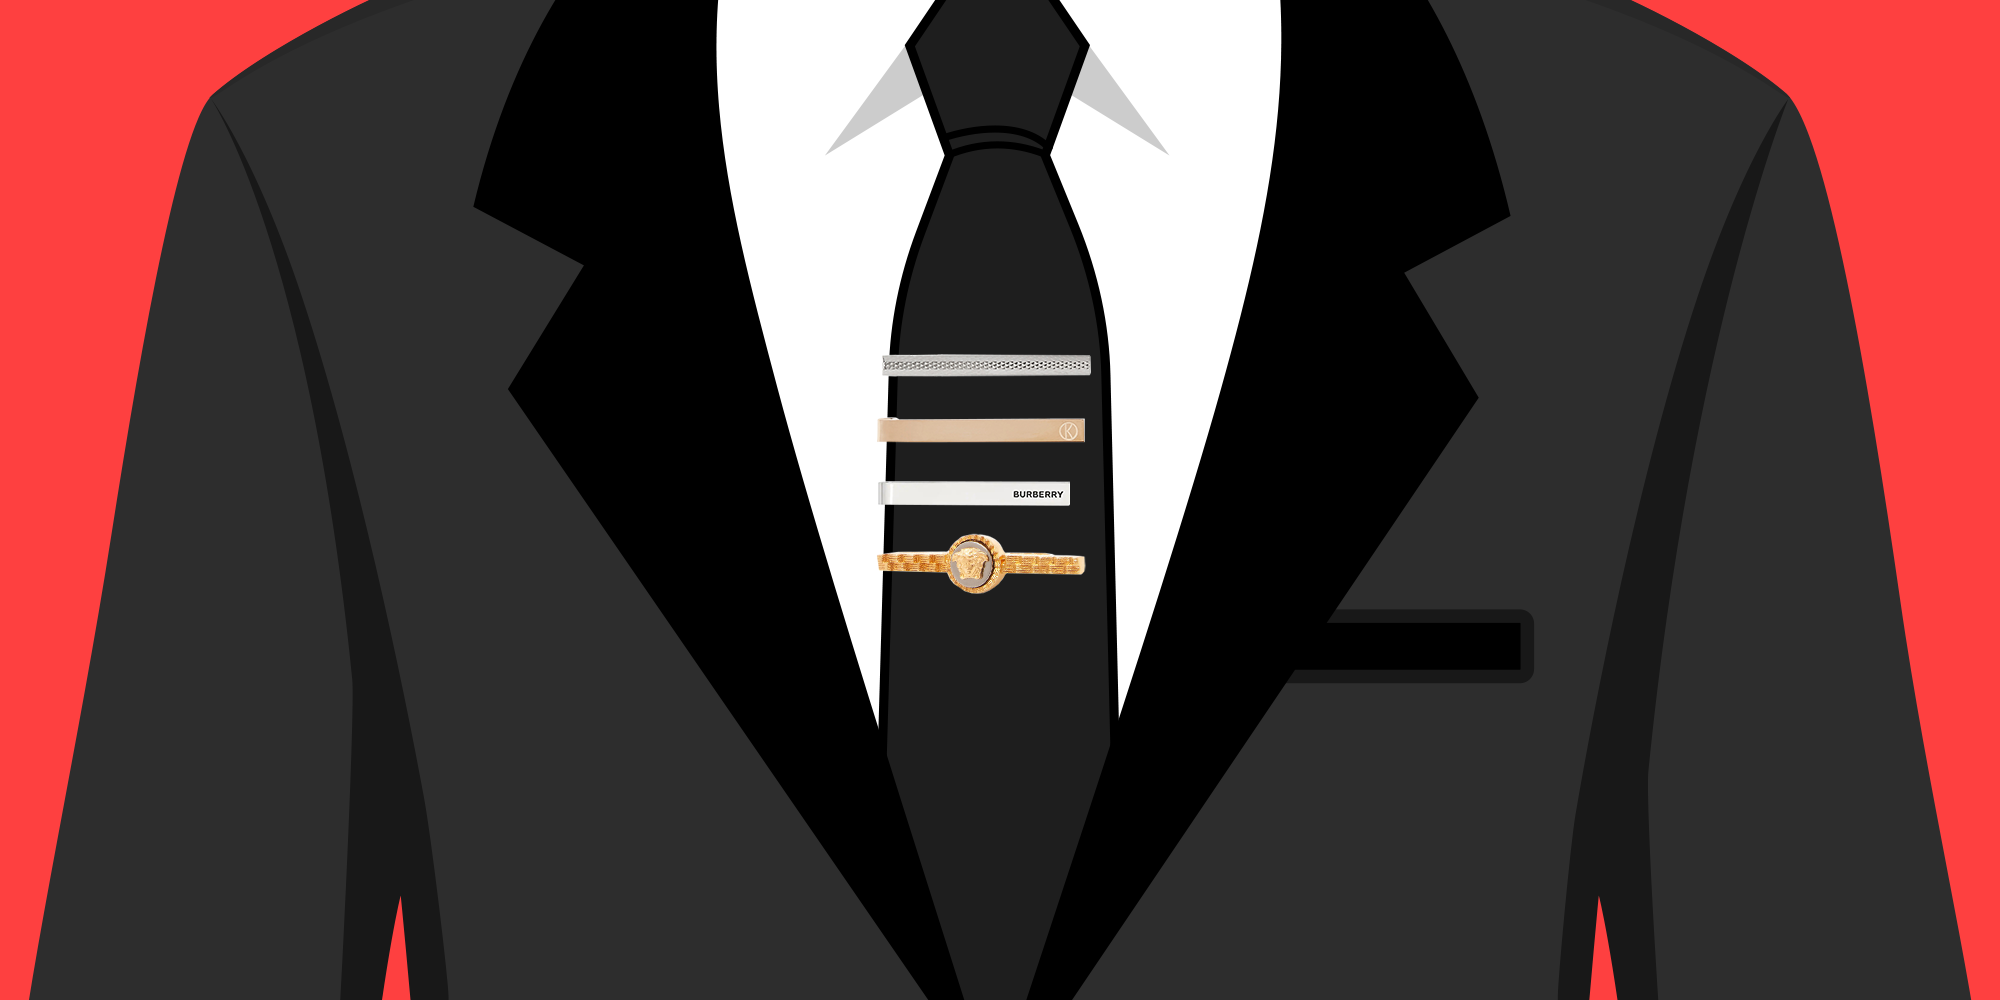 cc93c279daa0 10 Best Tie Bars to Wear for 2019 - How to Wear a Tie Clip